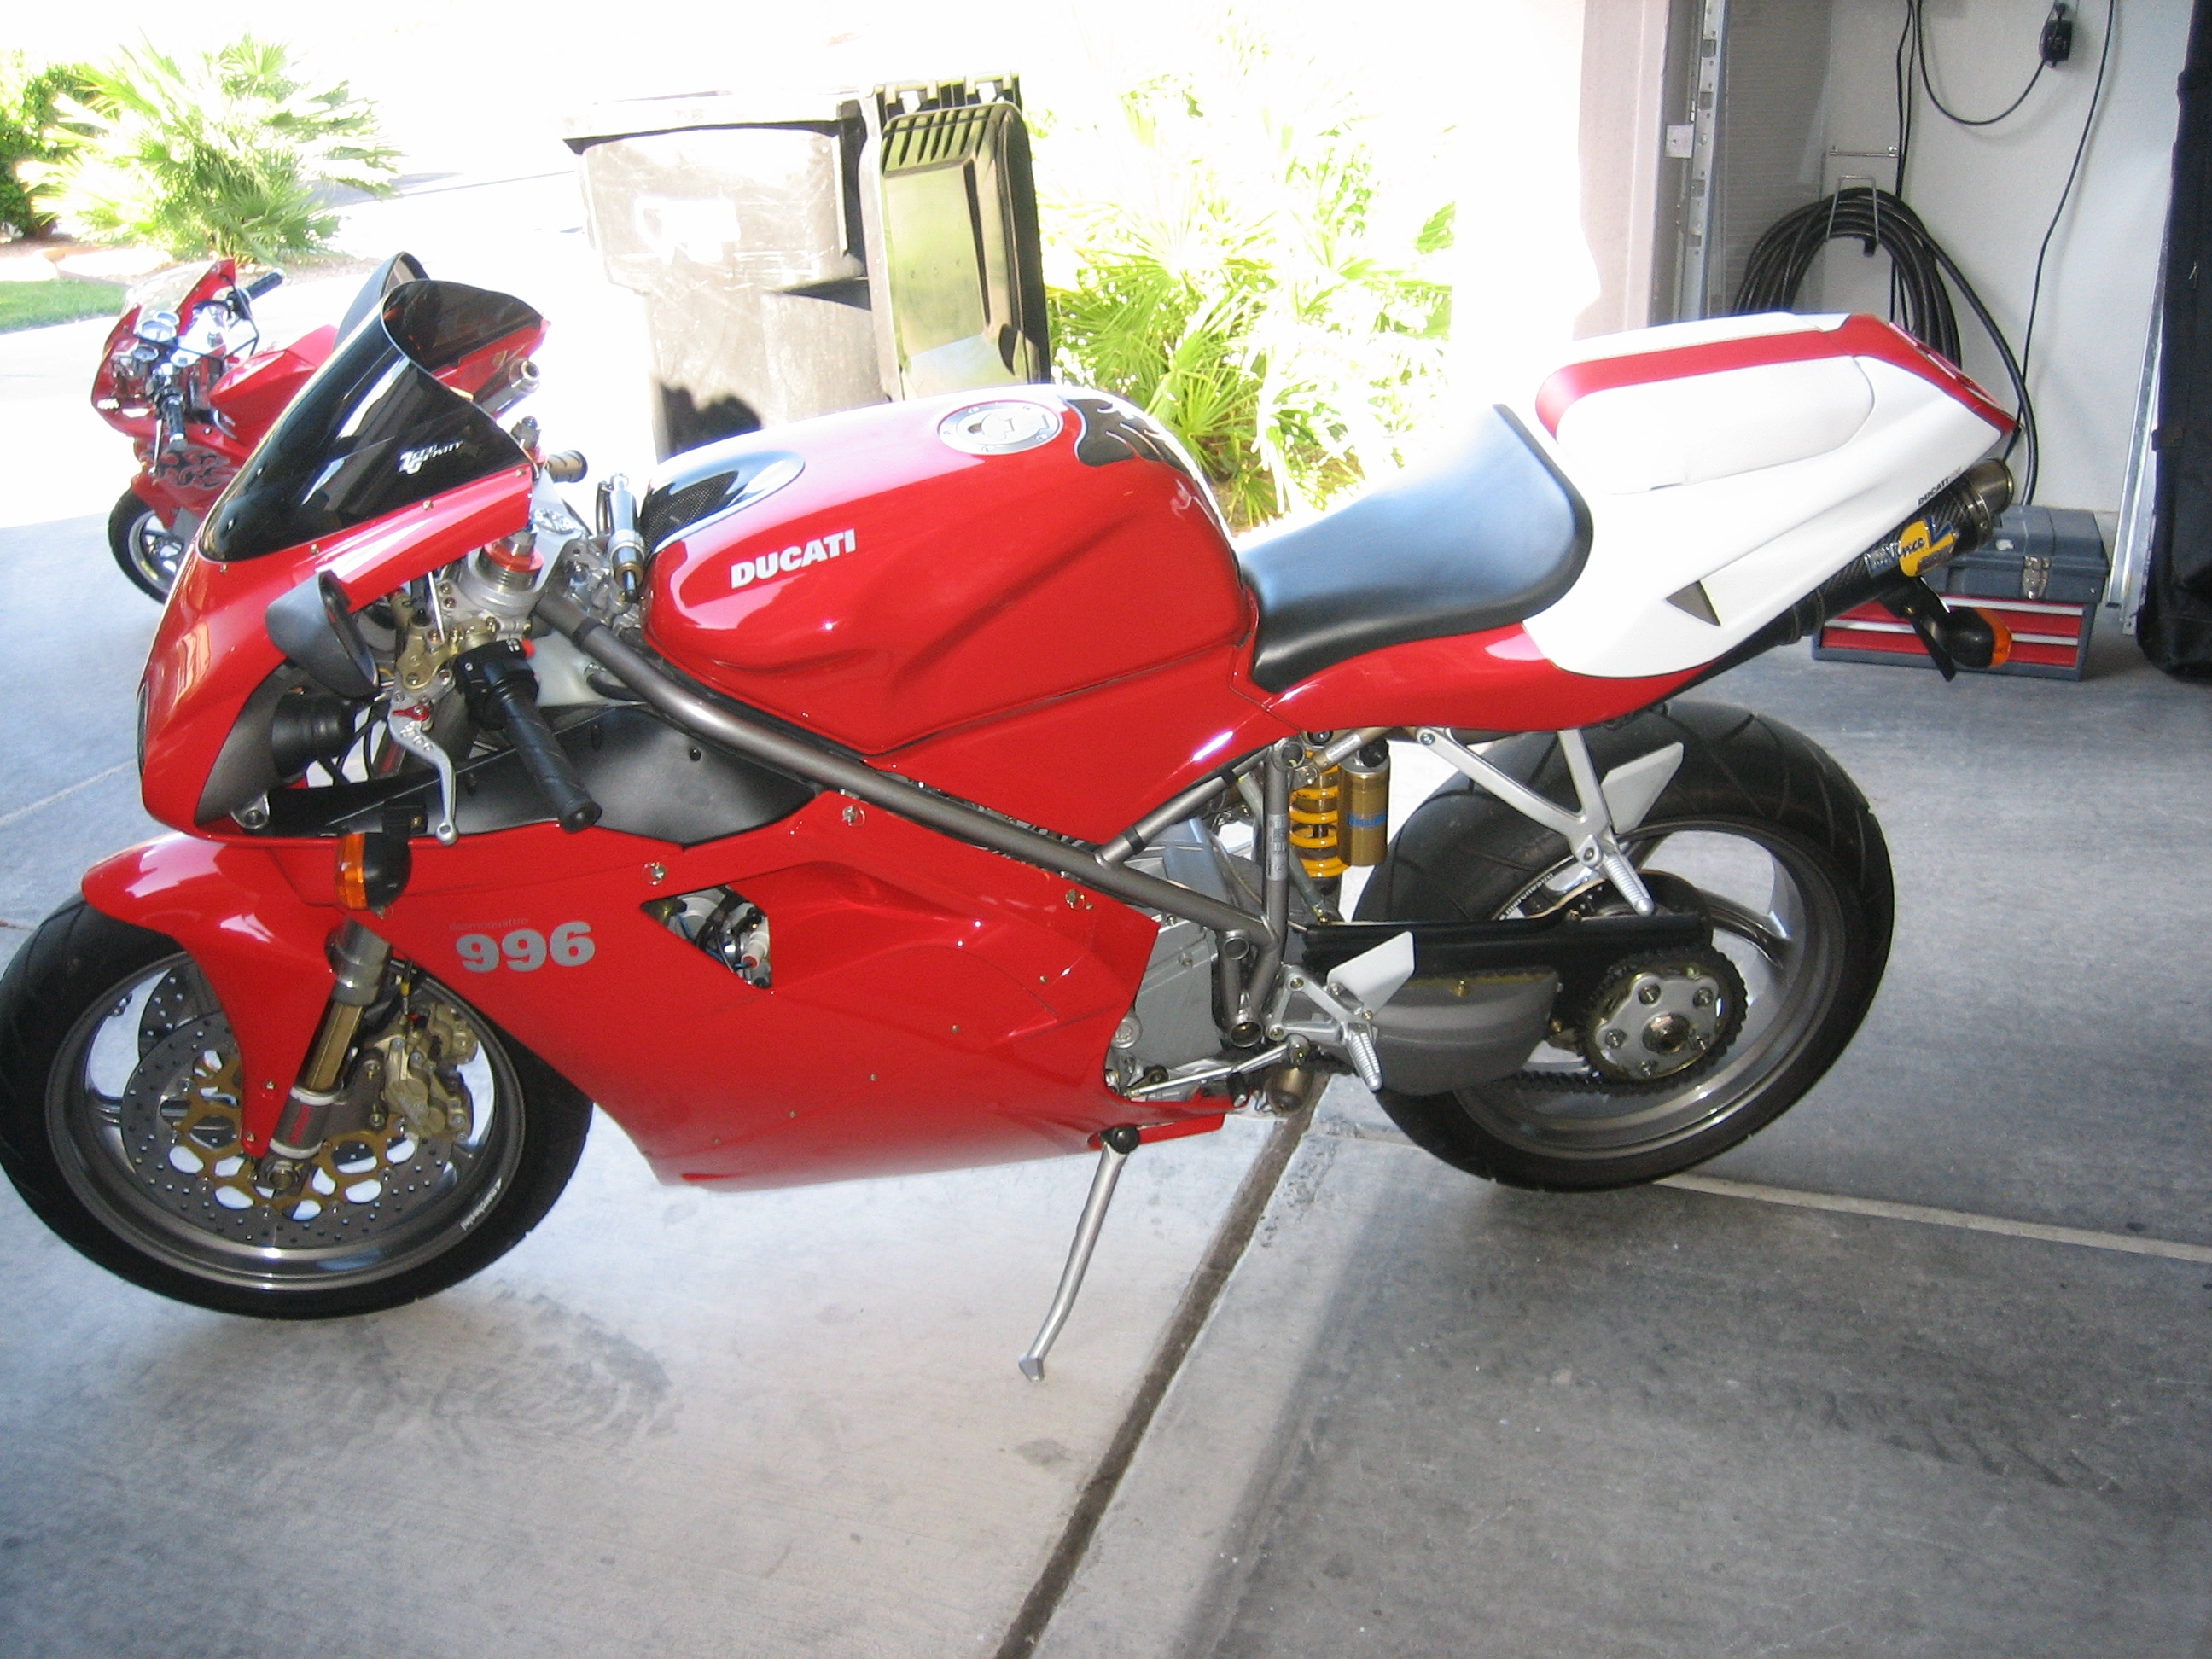 Ducati 996 wallpapers #150630